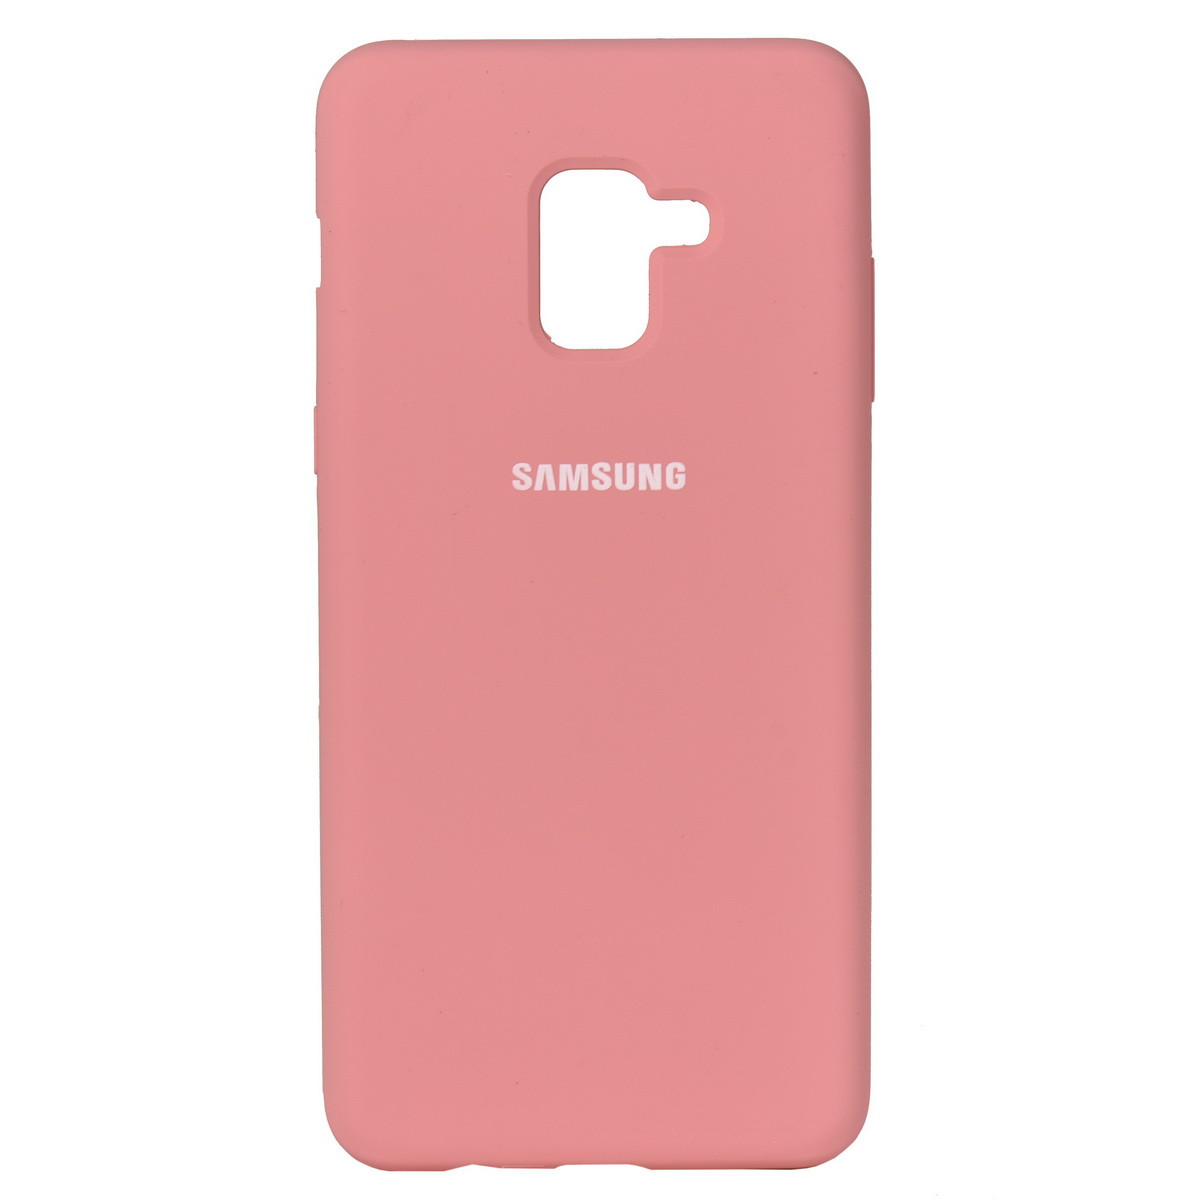 Чехол для Samsung Galaxy A8 Plus (2018) A730 back cover Silky and soft-touch Silicone Cover Pink